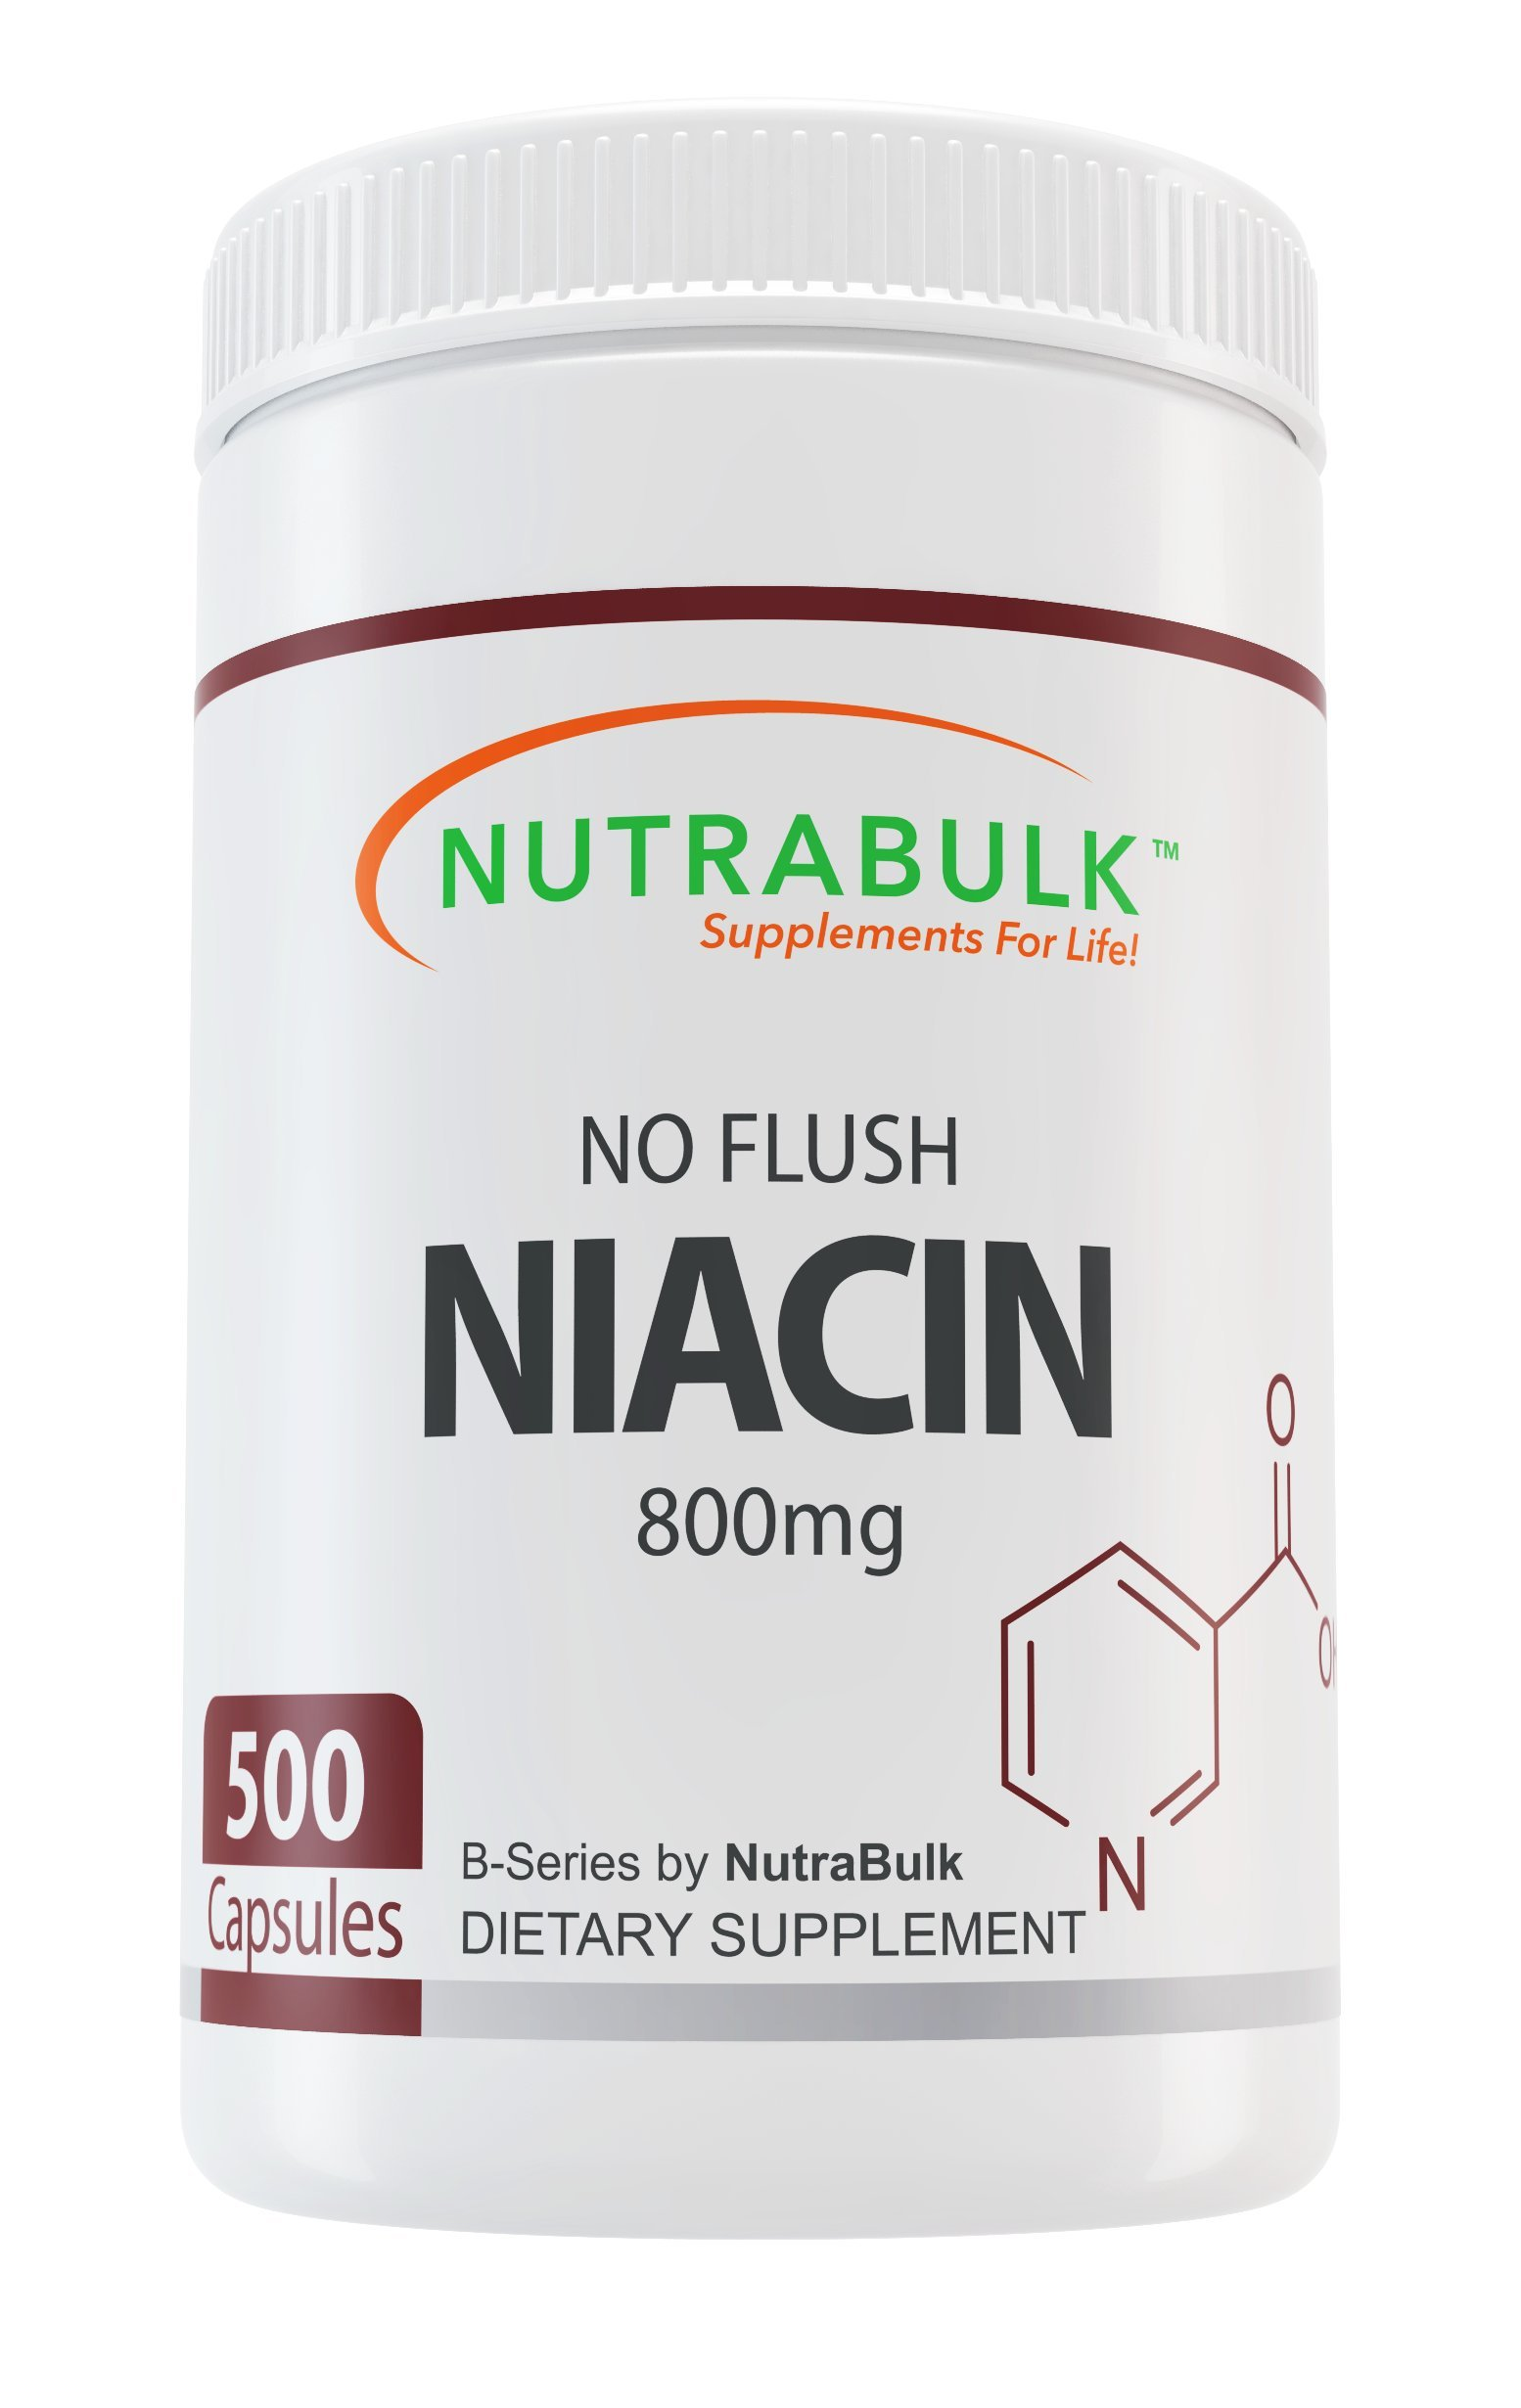 NutraBulk No Flush Niacin 800mg Capsules 500 count